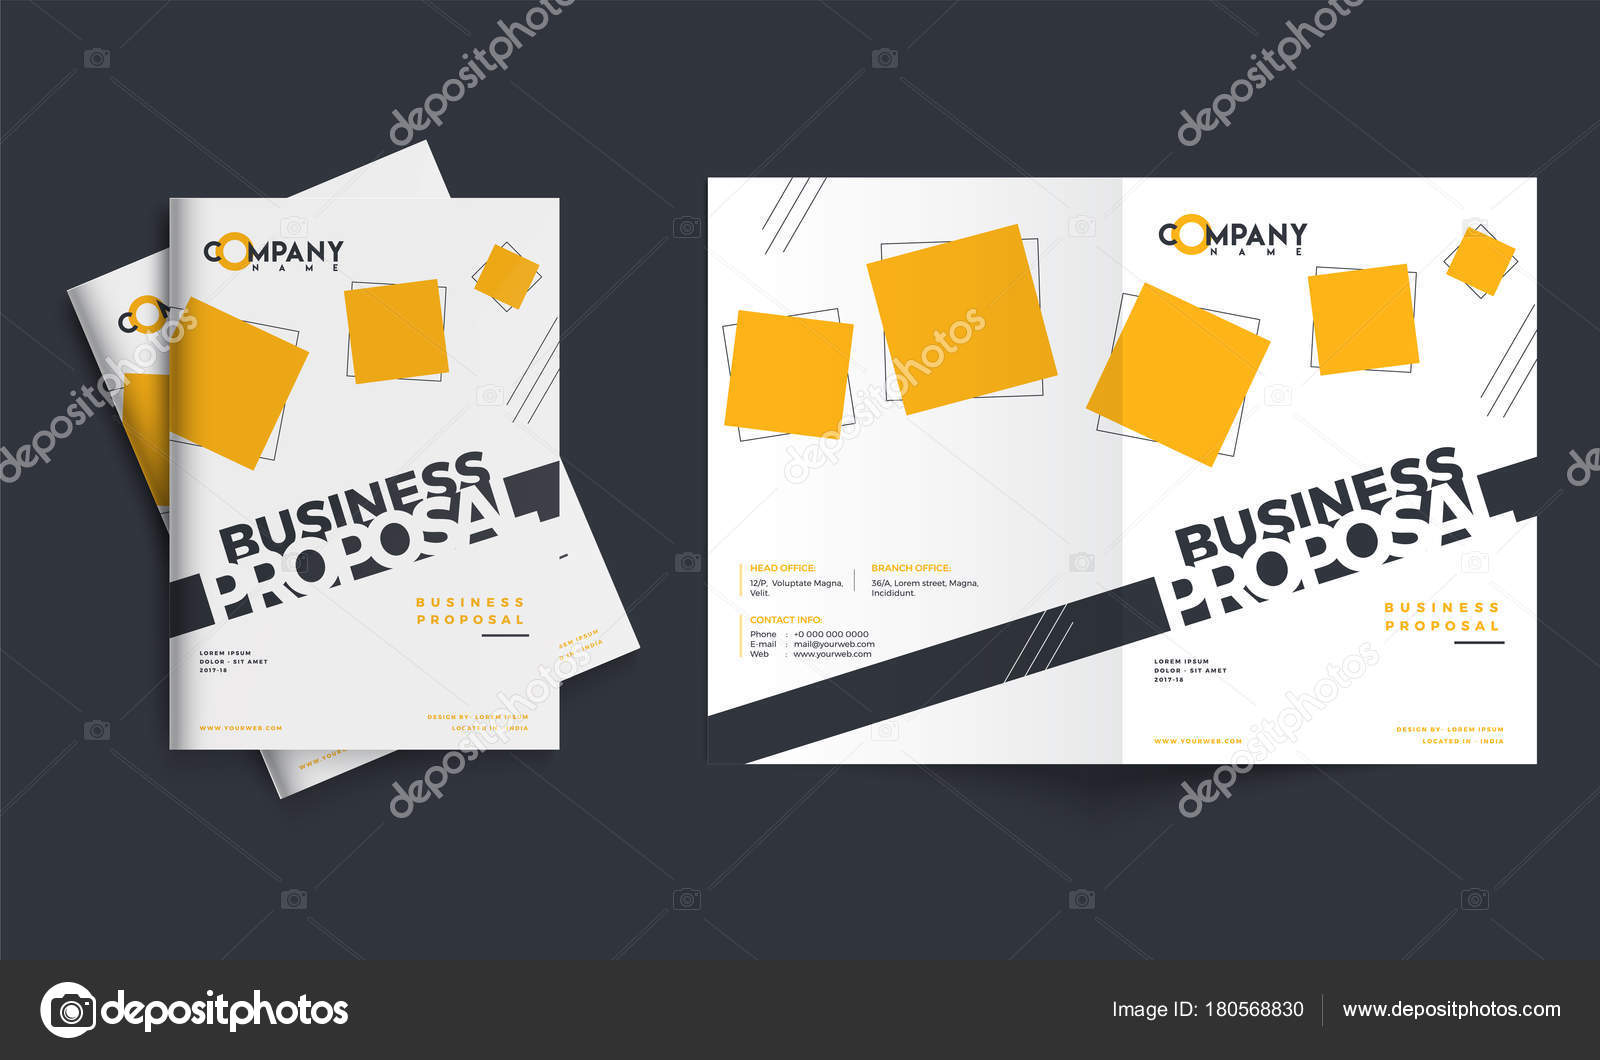 Creative business proposal design corporate template layout wit creative business proposal design corporate template layout wit stock vector flashek Image collections